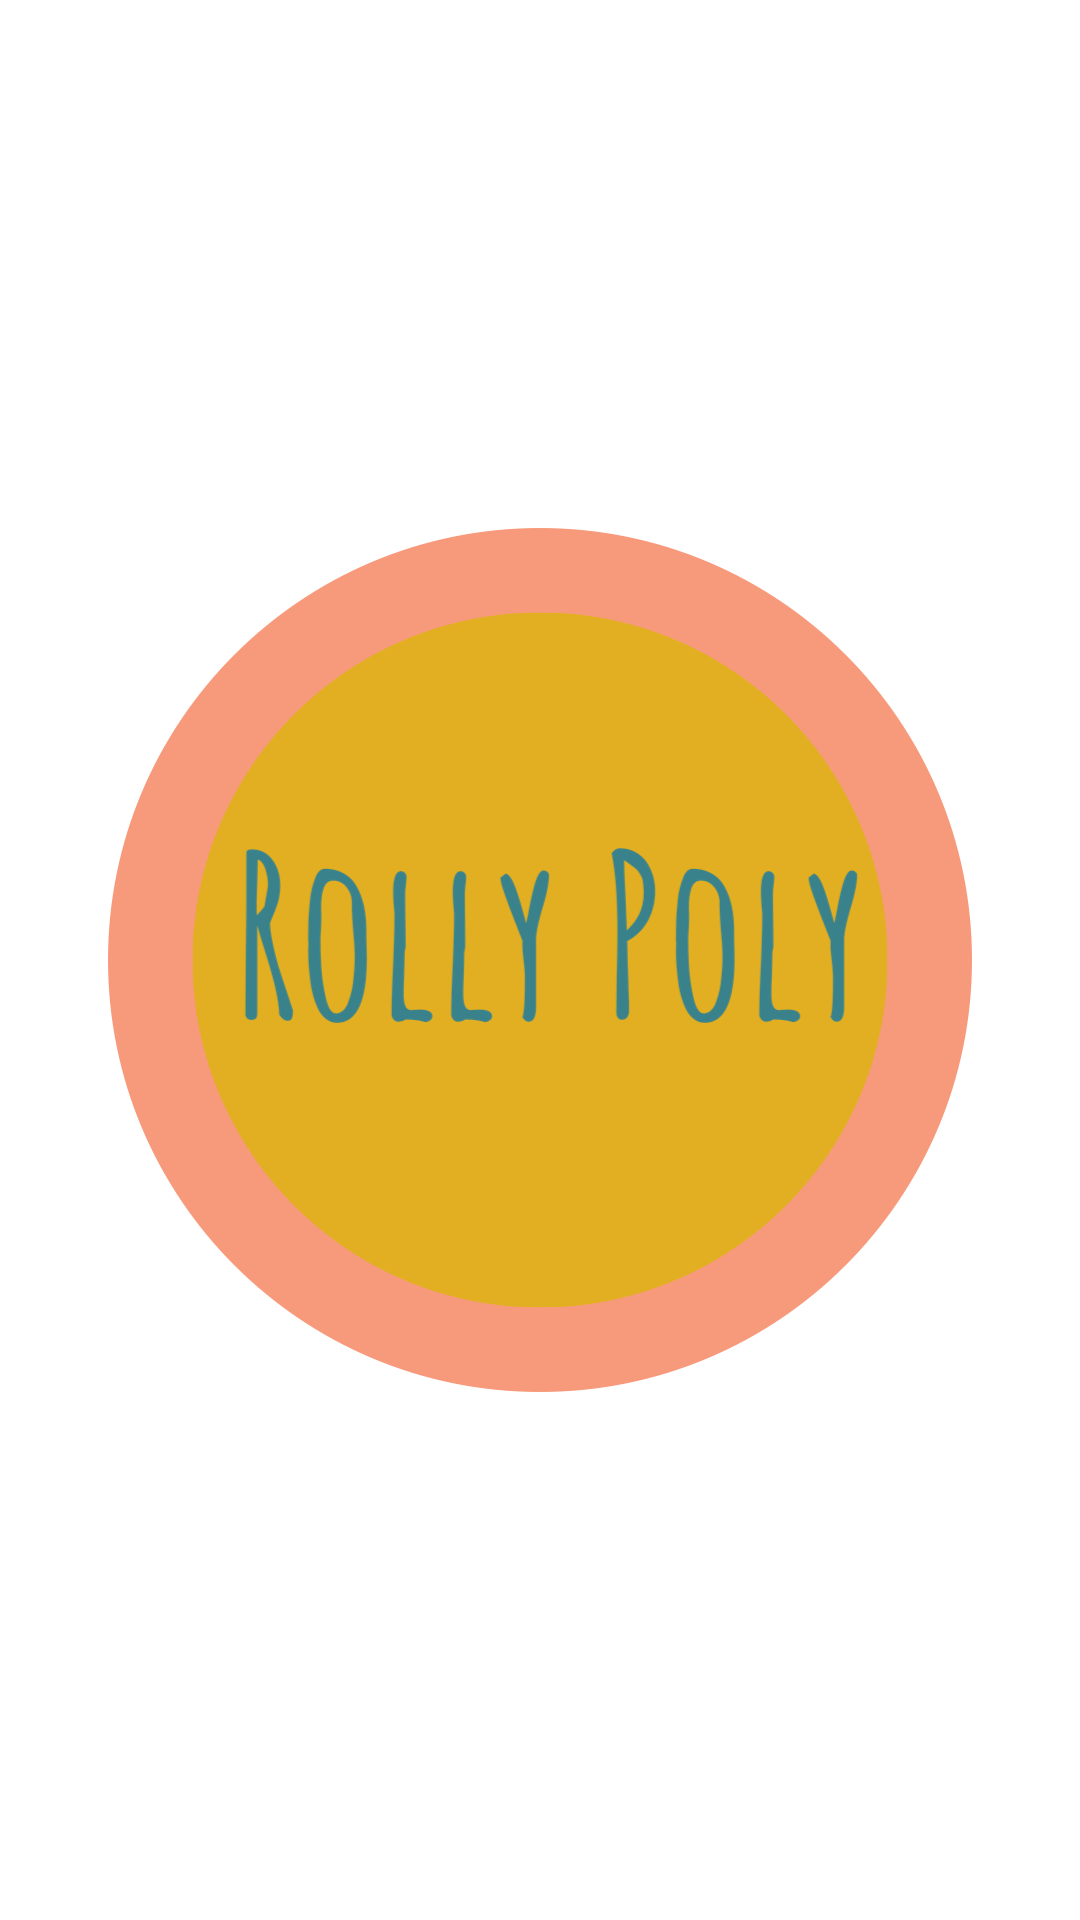 Rolly Poly